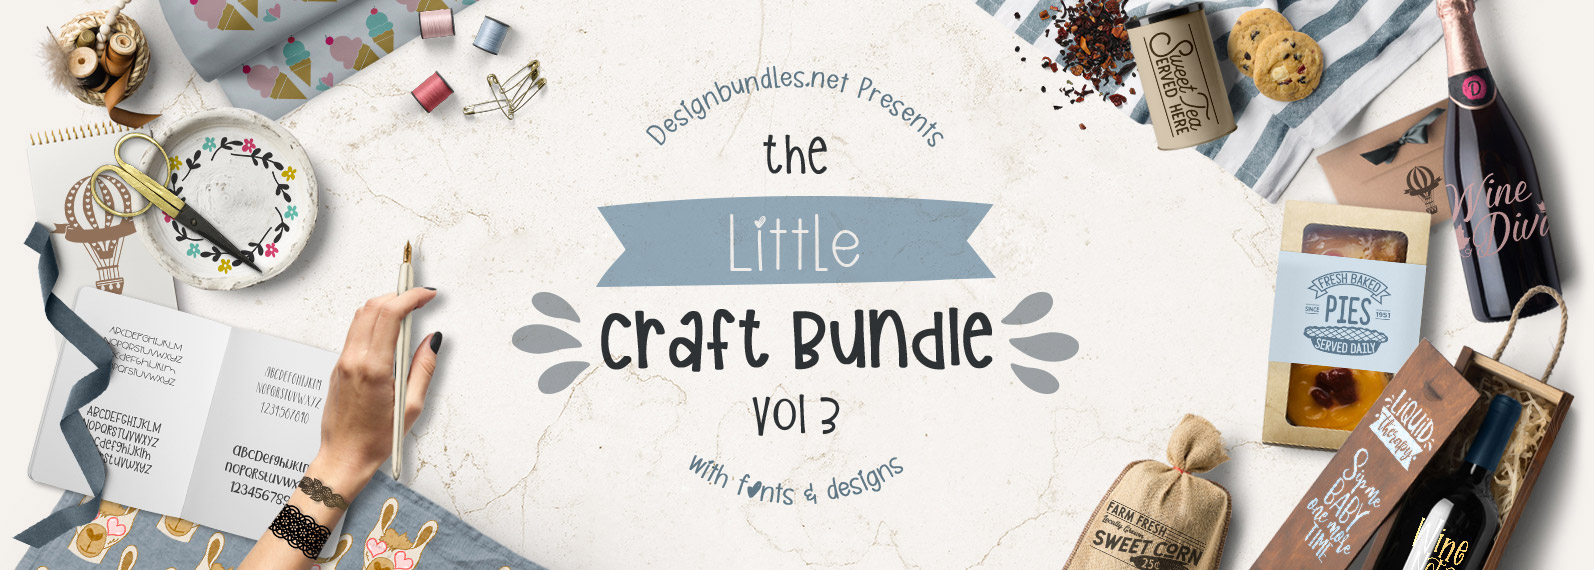 The Little Craft Bundle III Cover